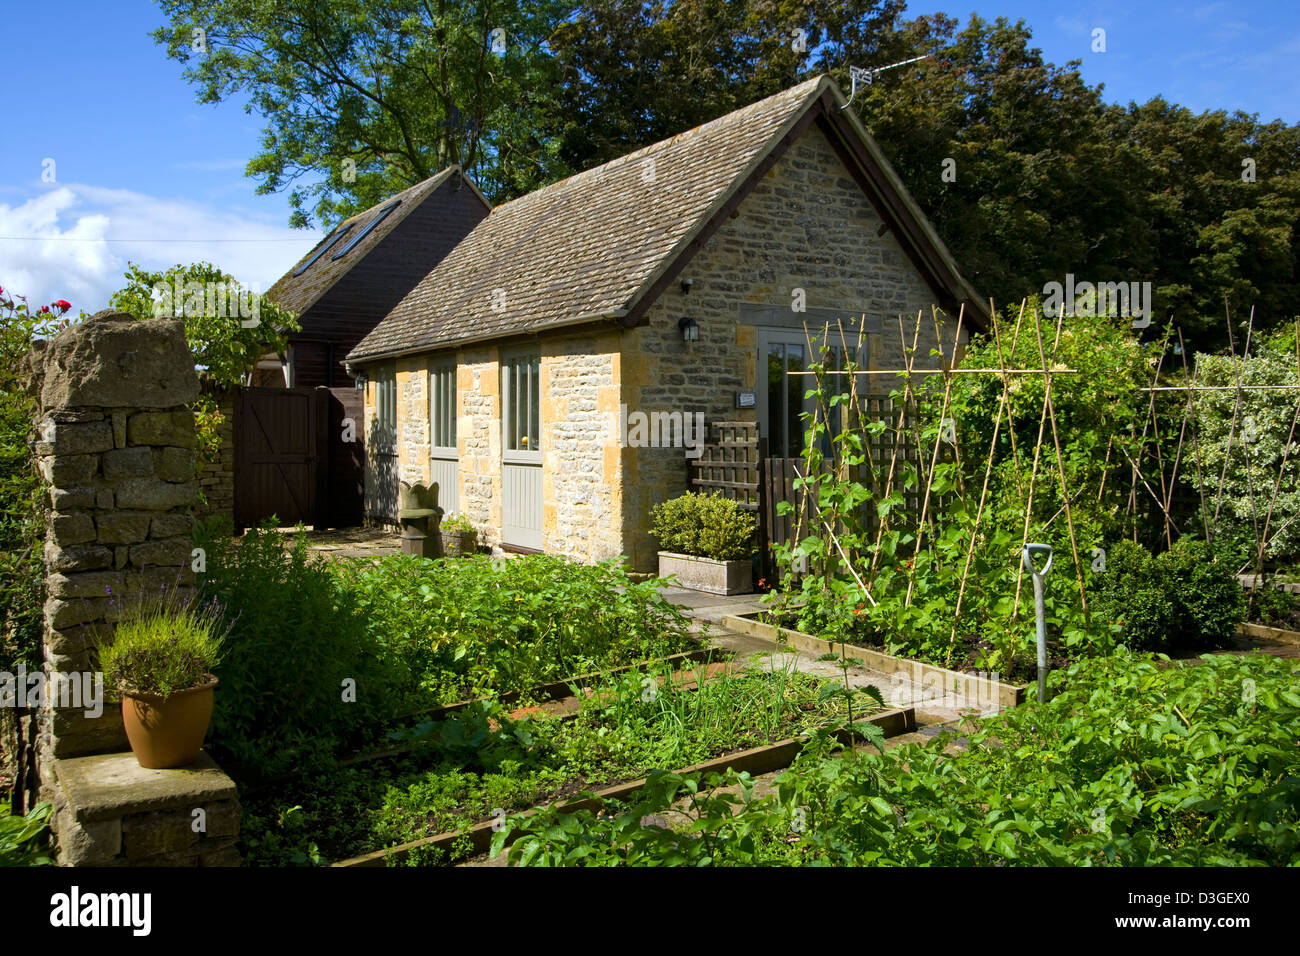 Uk Gardens A Small Raised Bed Vegetable Garden By An Outbuilding Stock Photo Alamy